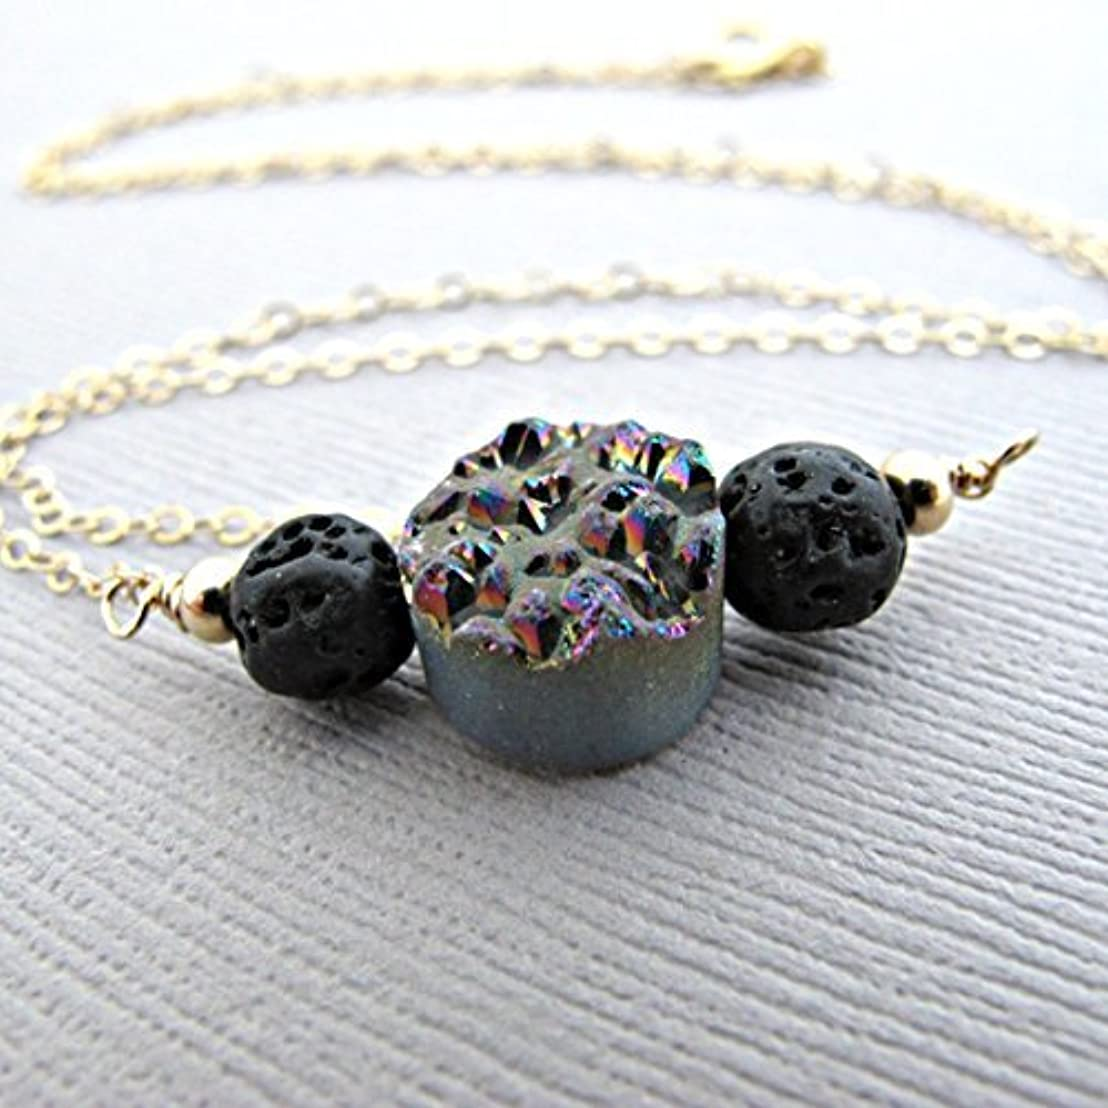 神話全国シニスRainbow Druzy Lava Pendant Essential Oil Necklace Diffuser Aromatherapy - Simple Minimalist Lava Bead Diffuser...